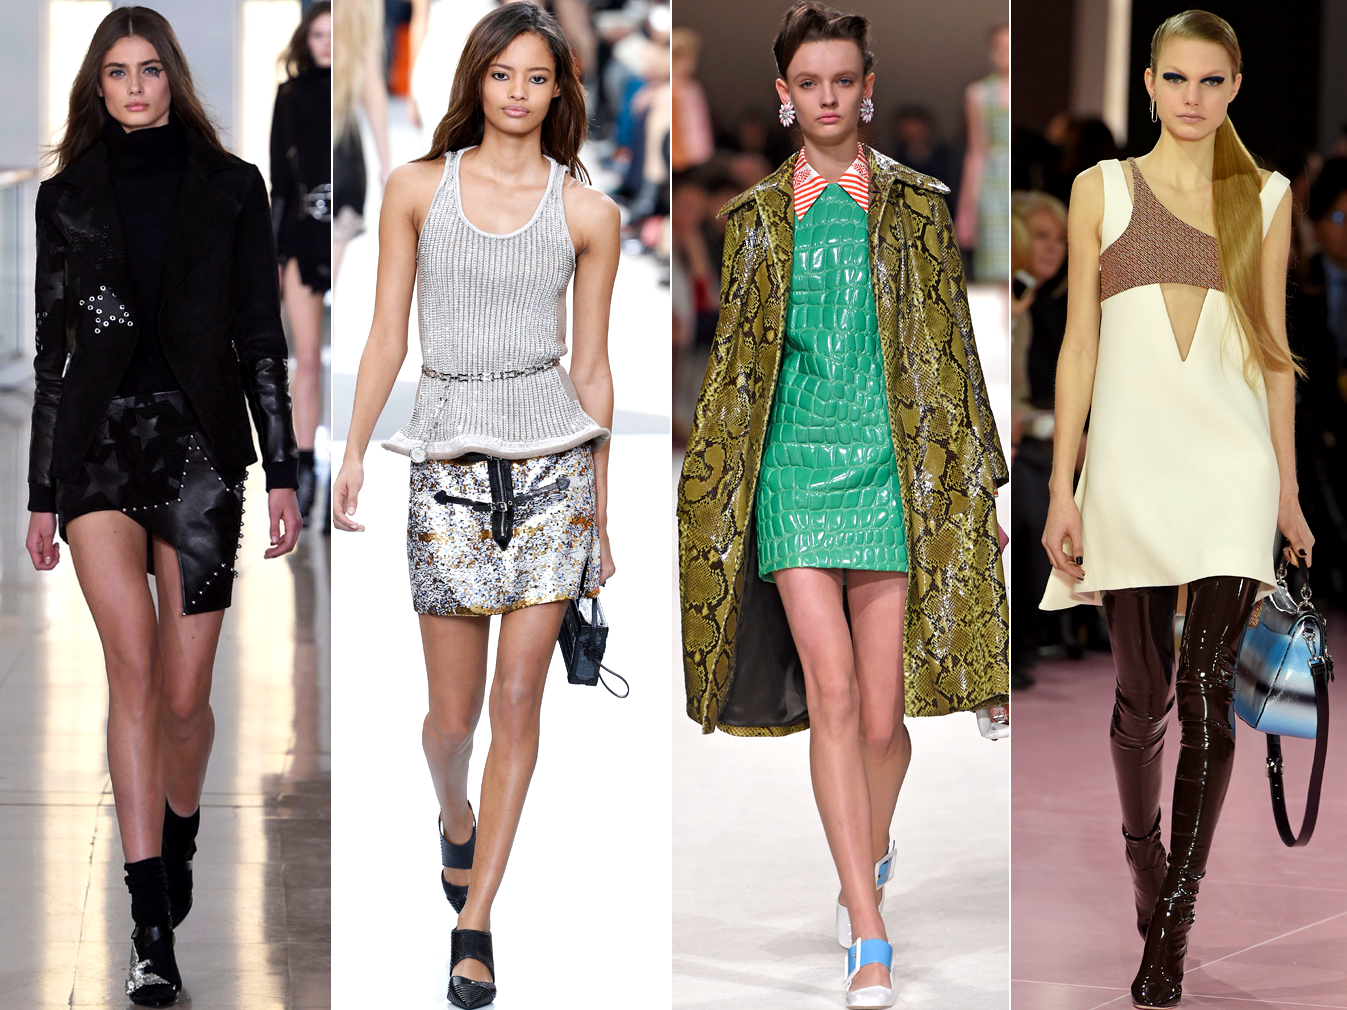 Mini Skirts And Dresses Fall 2015 Trends Paris Fashion Week